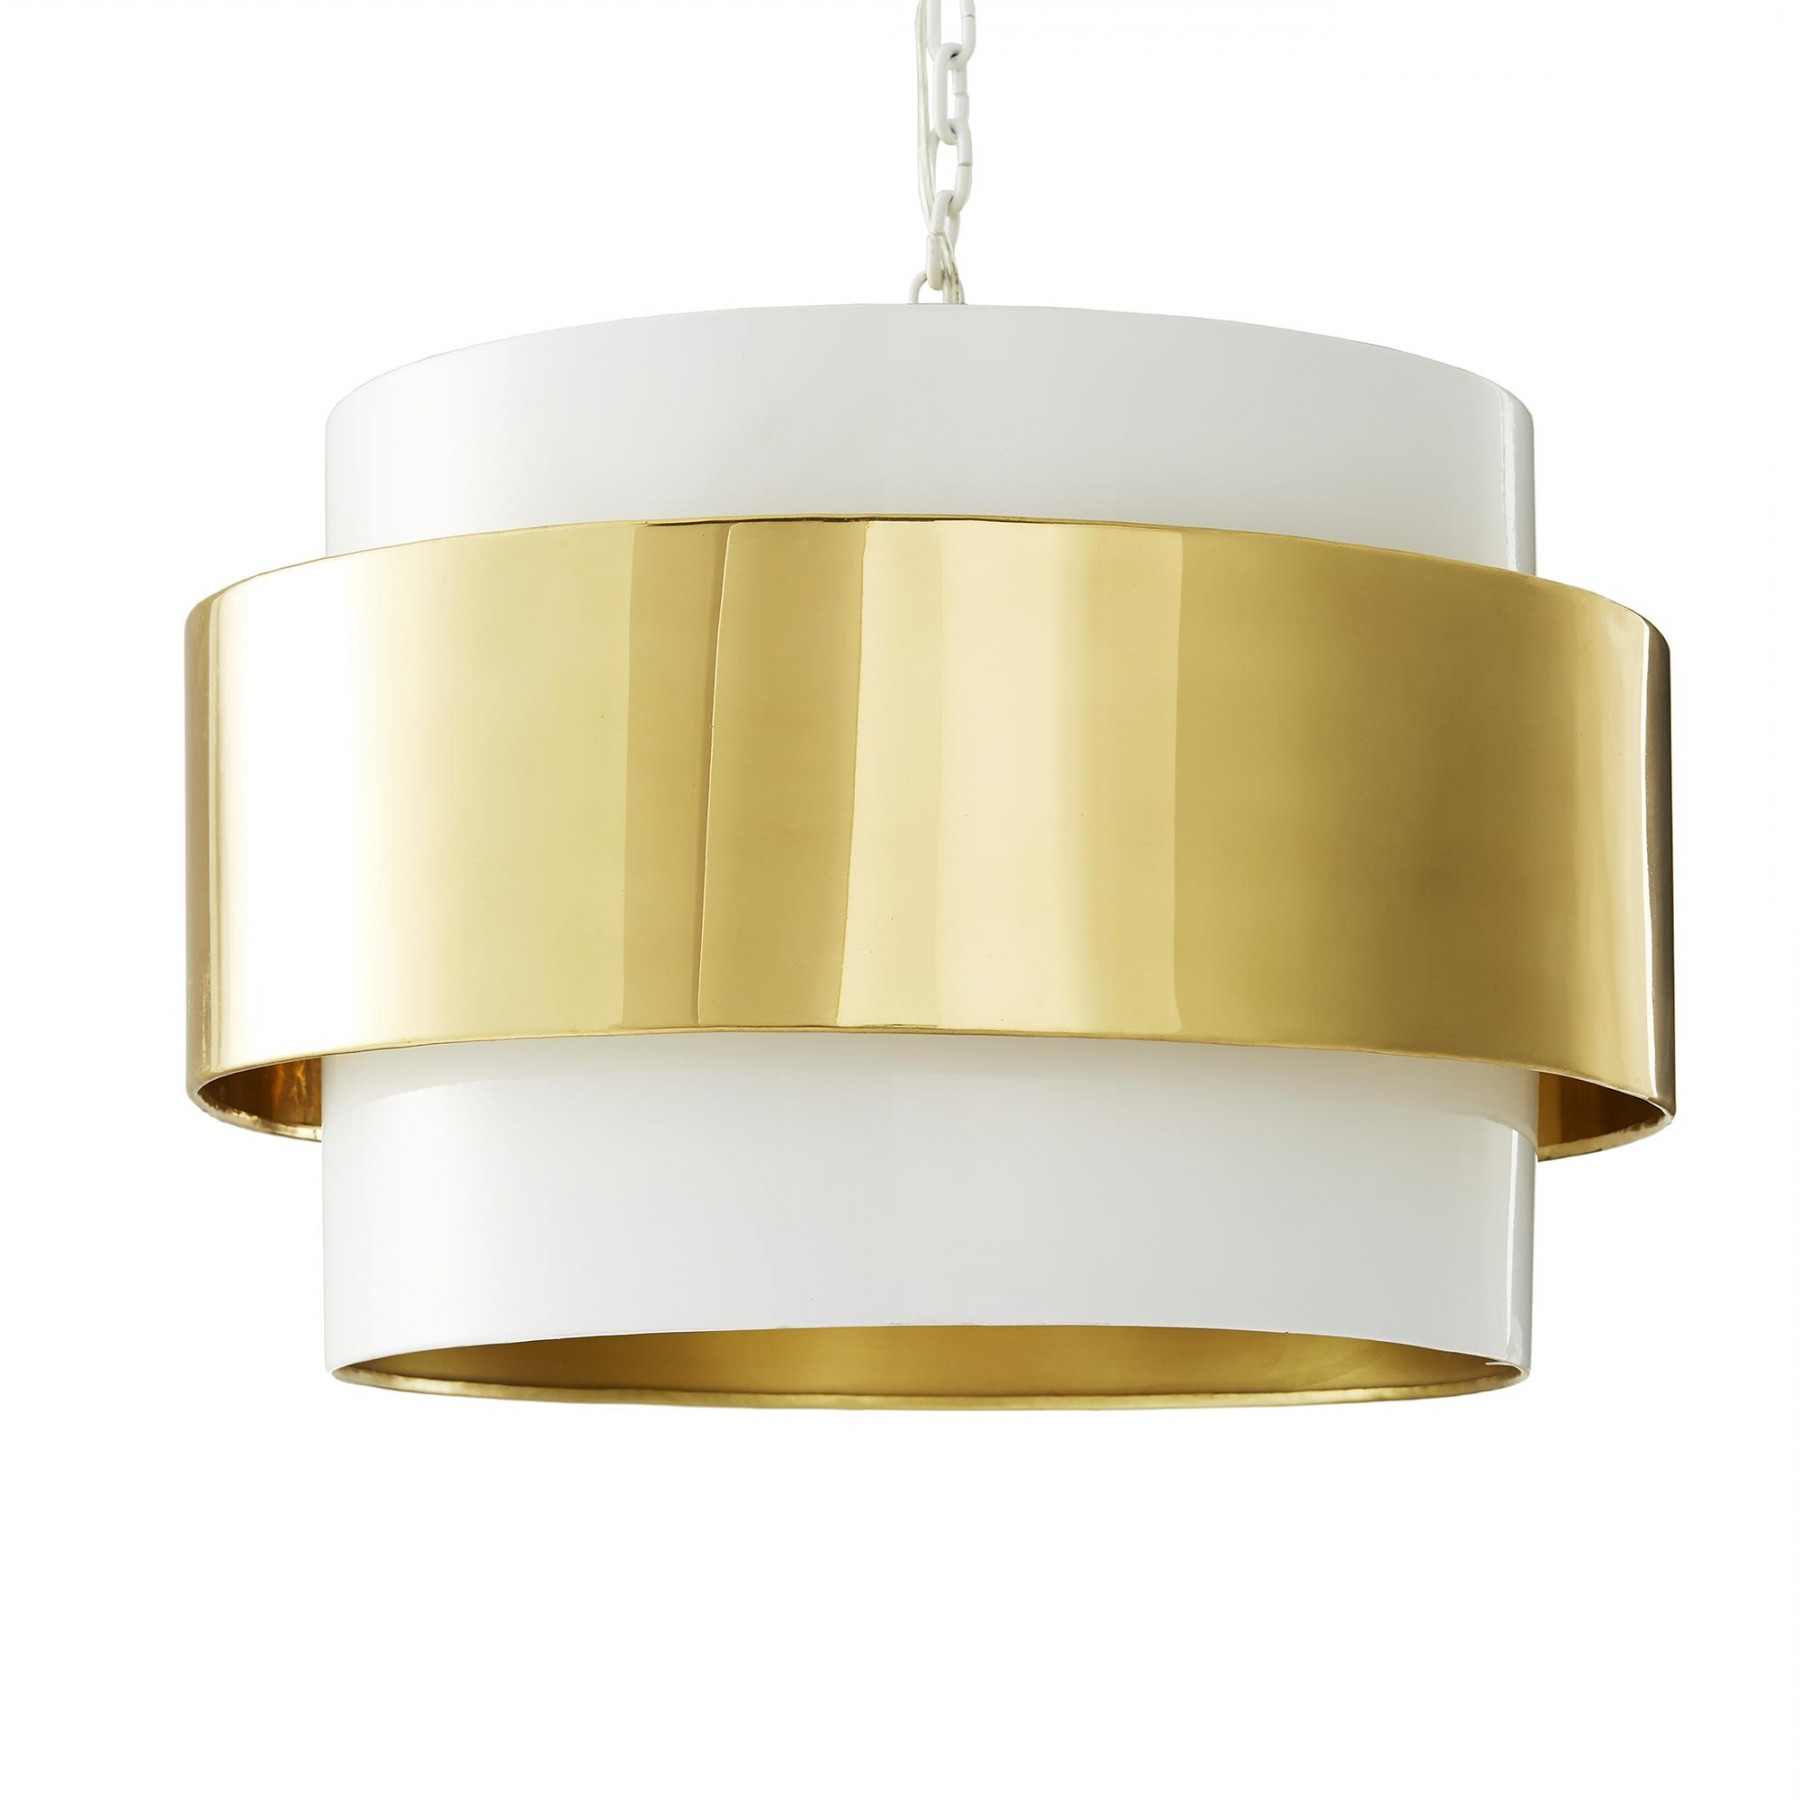 Nolan Small Pendant For Popular Nolan 1 Light Single Cylinder Pendants (Gallery 12 of 20)